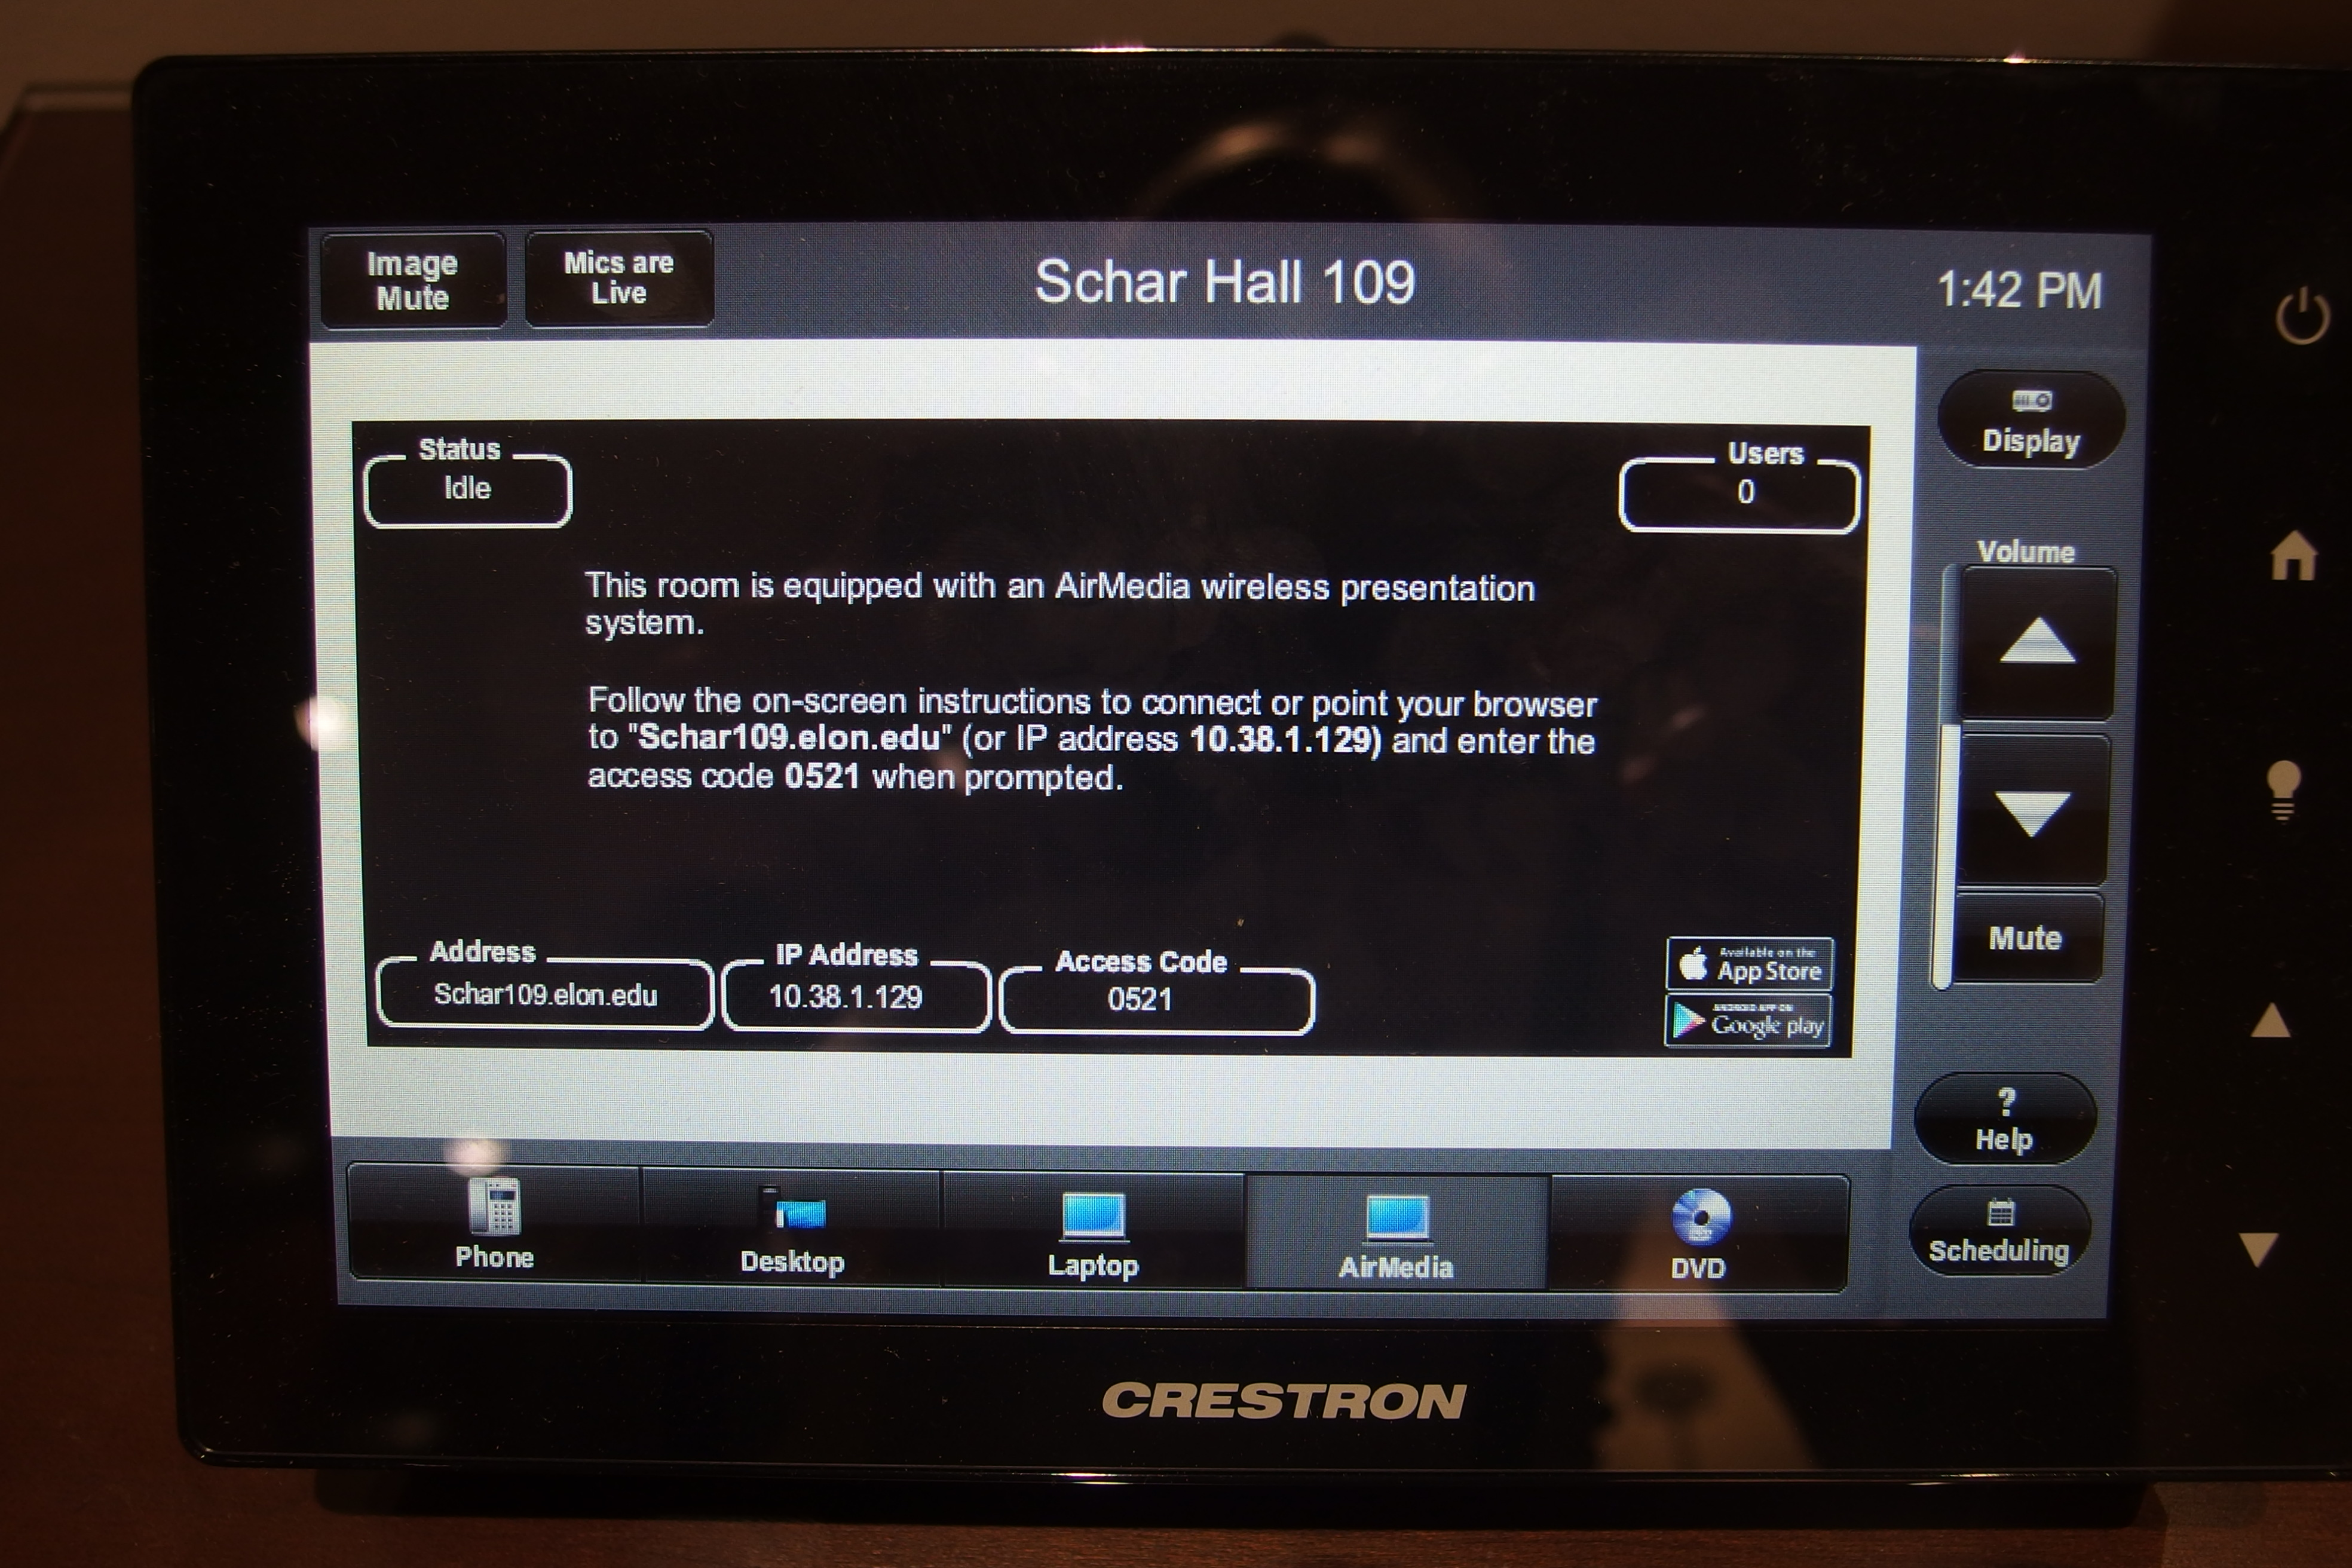 A photo of the touch panel showing the Air Media page.